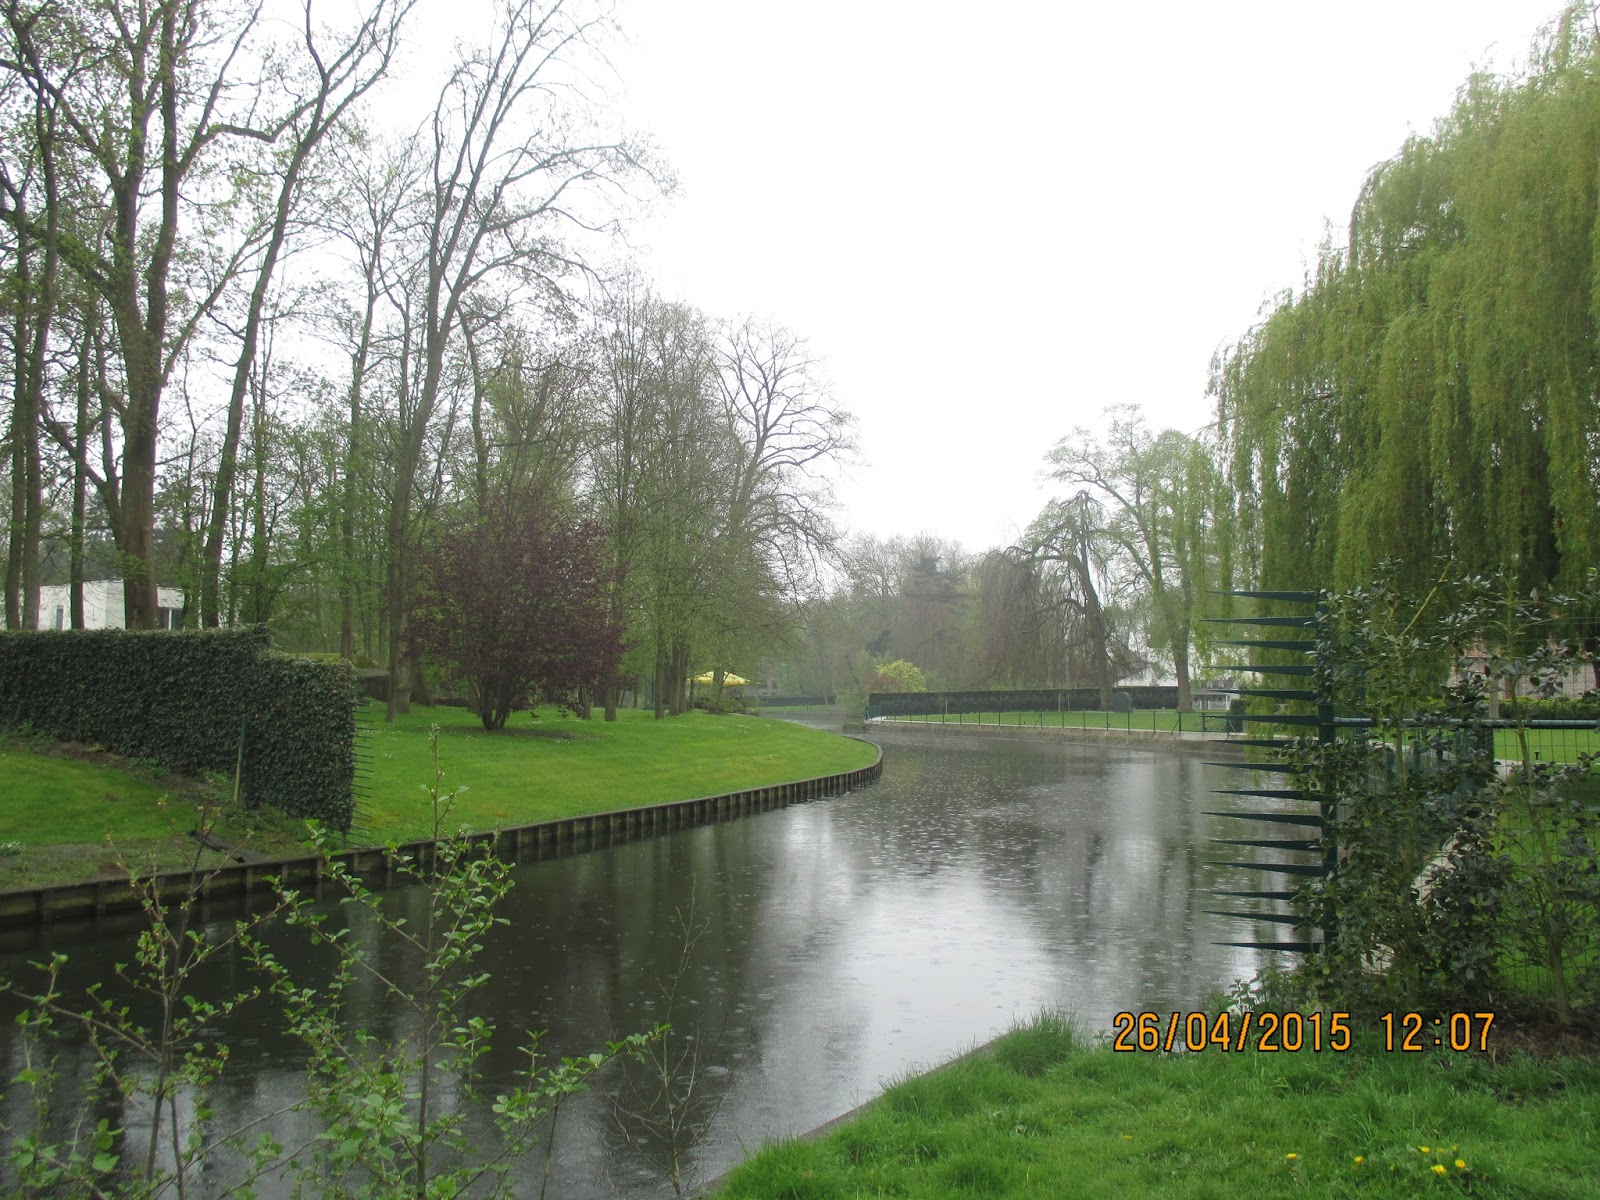 Flaminca Park in Jabbeke